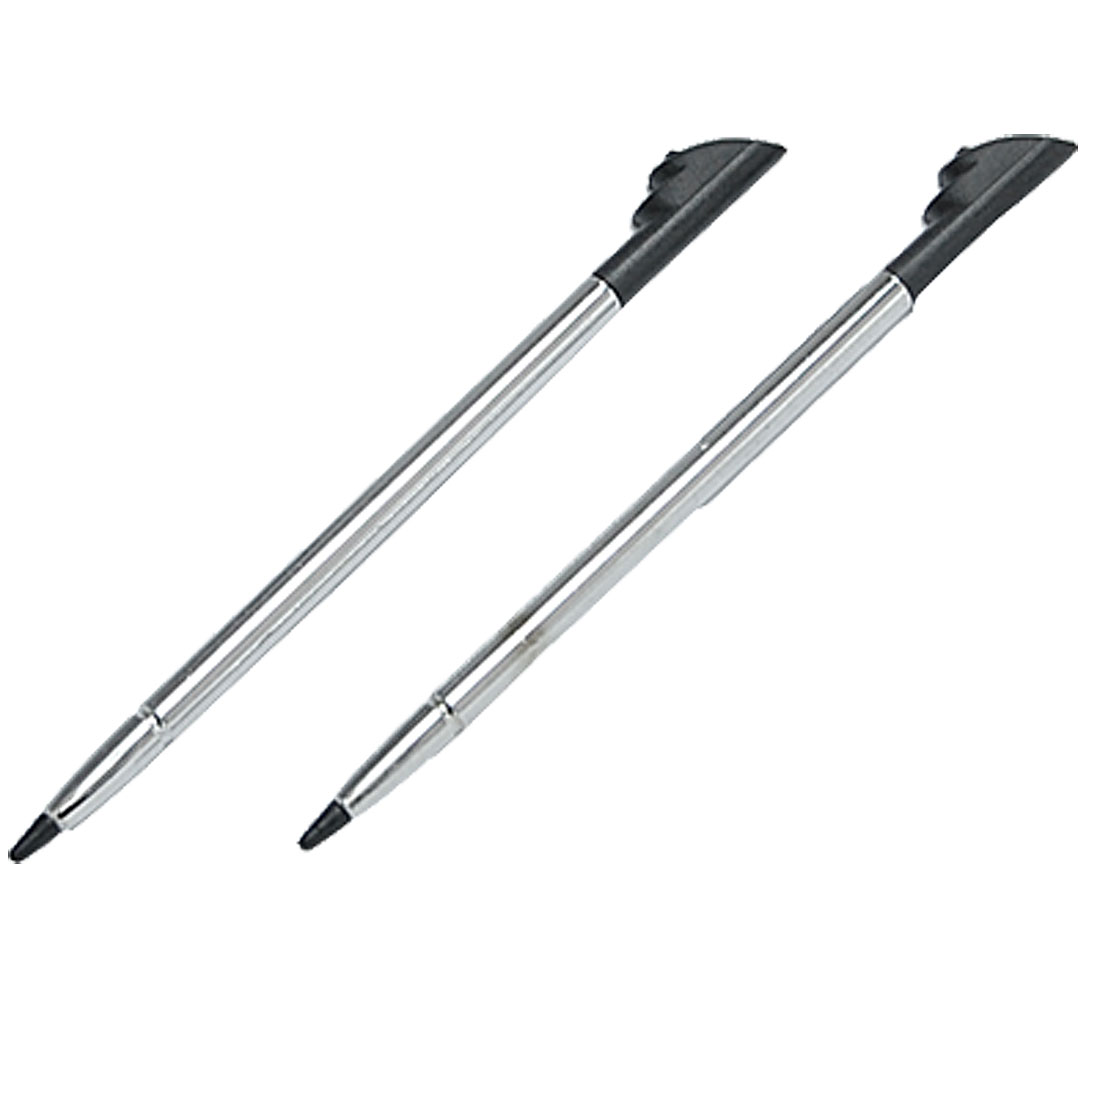 2 Pcs Stylus Replacement Touch Pen for Phone Dopod S1